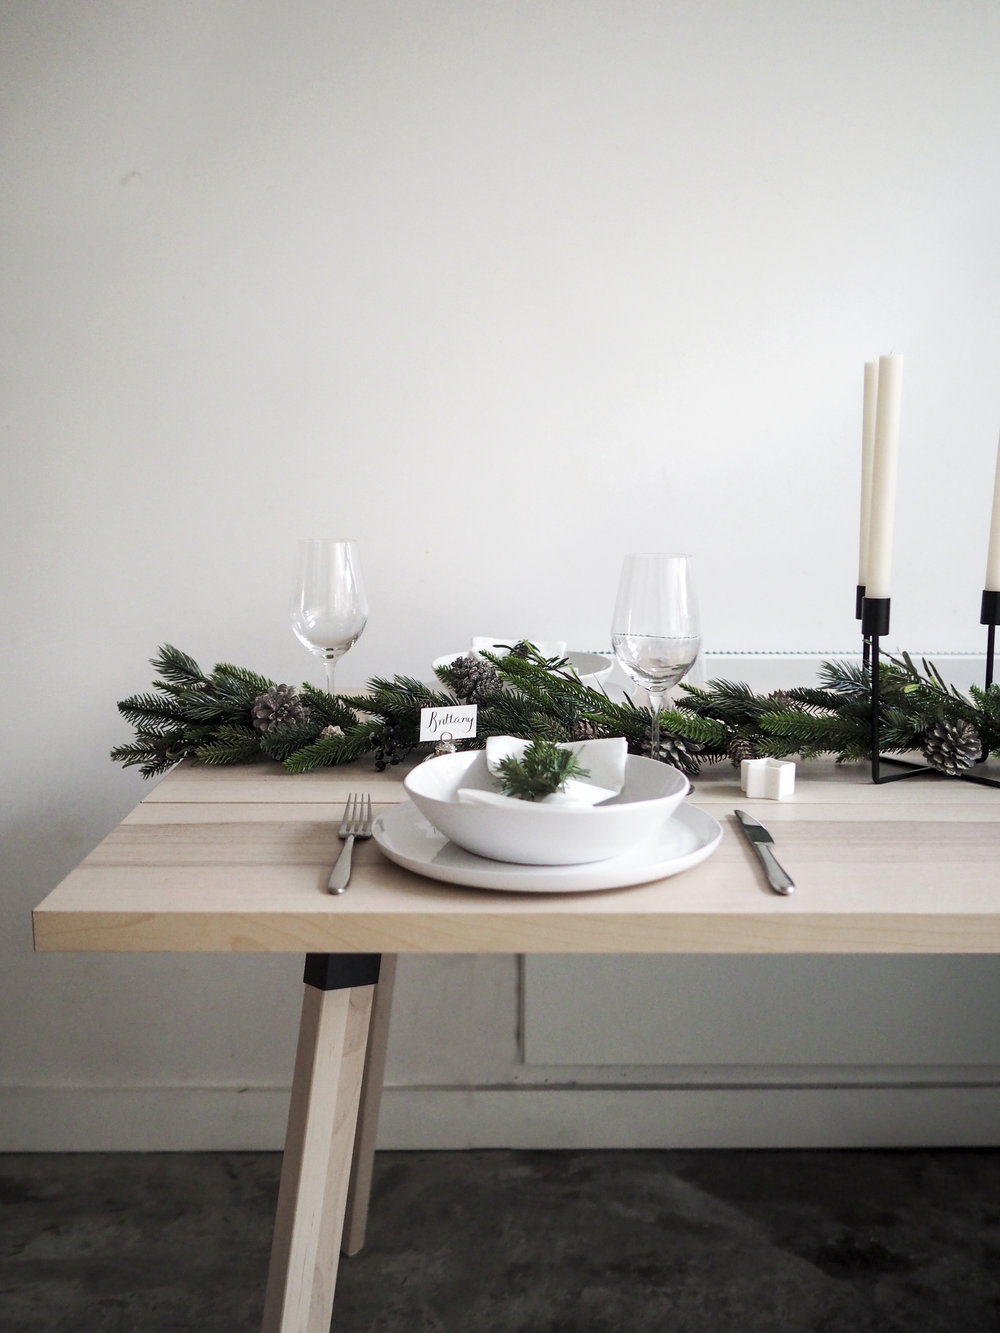 Pine Cone Garland  /  Artisan Stoneware  /  Pure Dinner Candles  /  Belgravia Wine Glasses  /  Winter Star Tealights  /  Place Card Holders